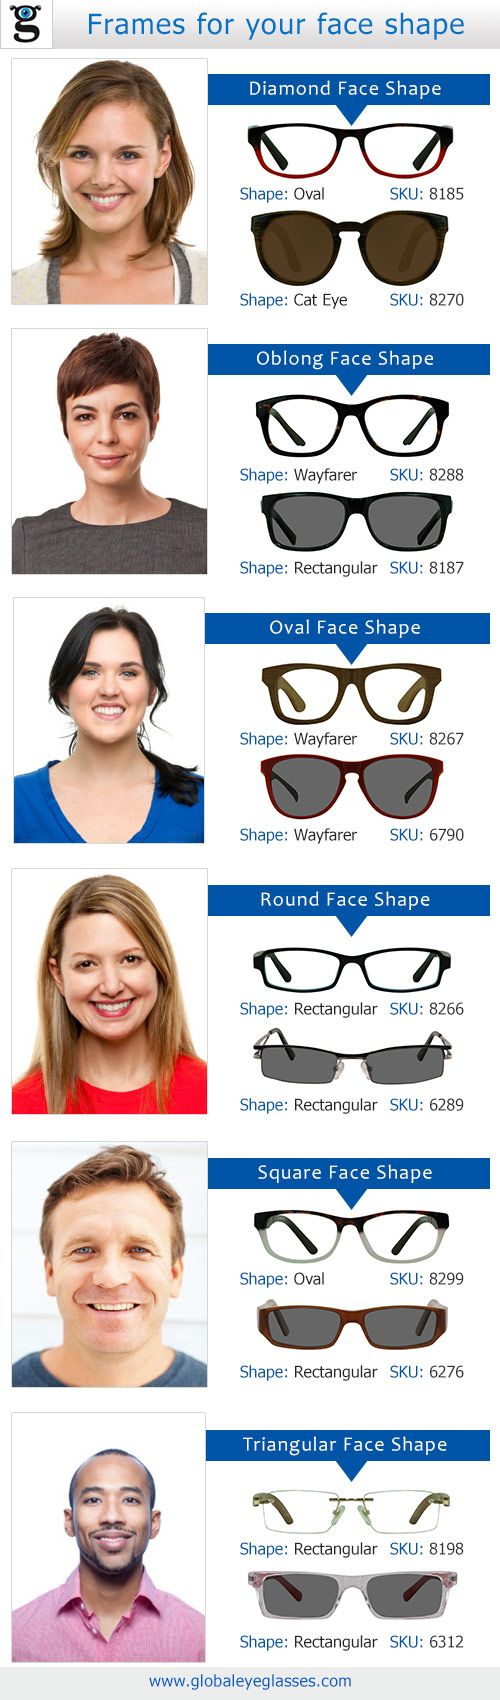 59937c7c25e5 Choosing the right eyeglasses based on your faceshape. Infographic for  Eyeglasses